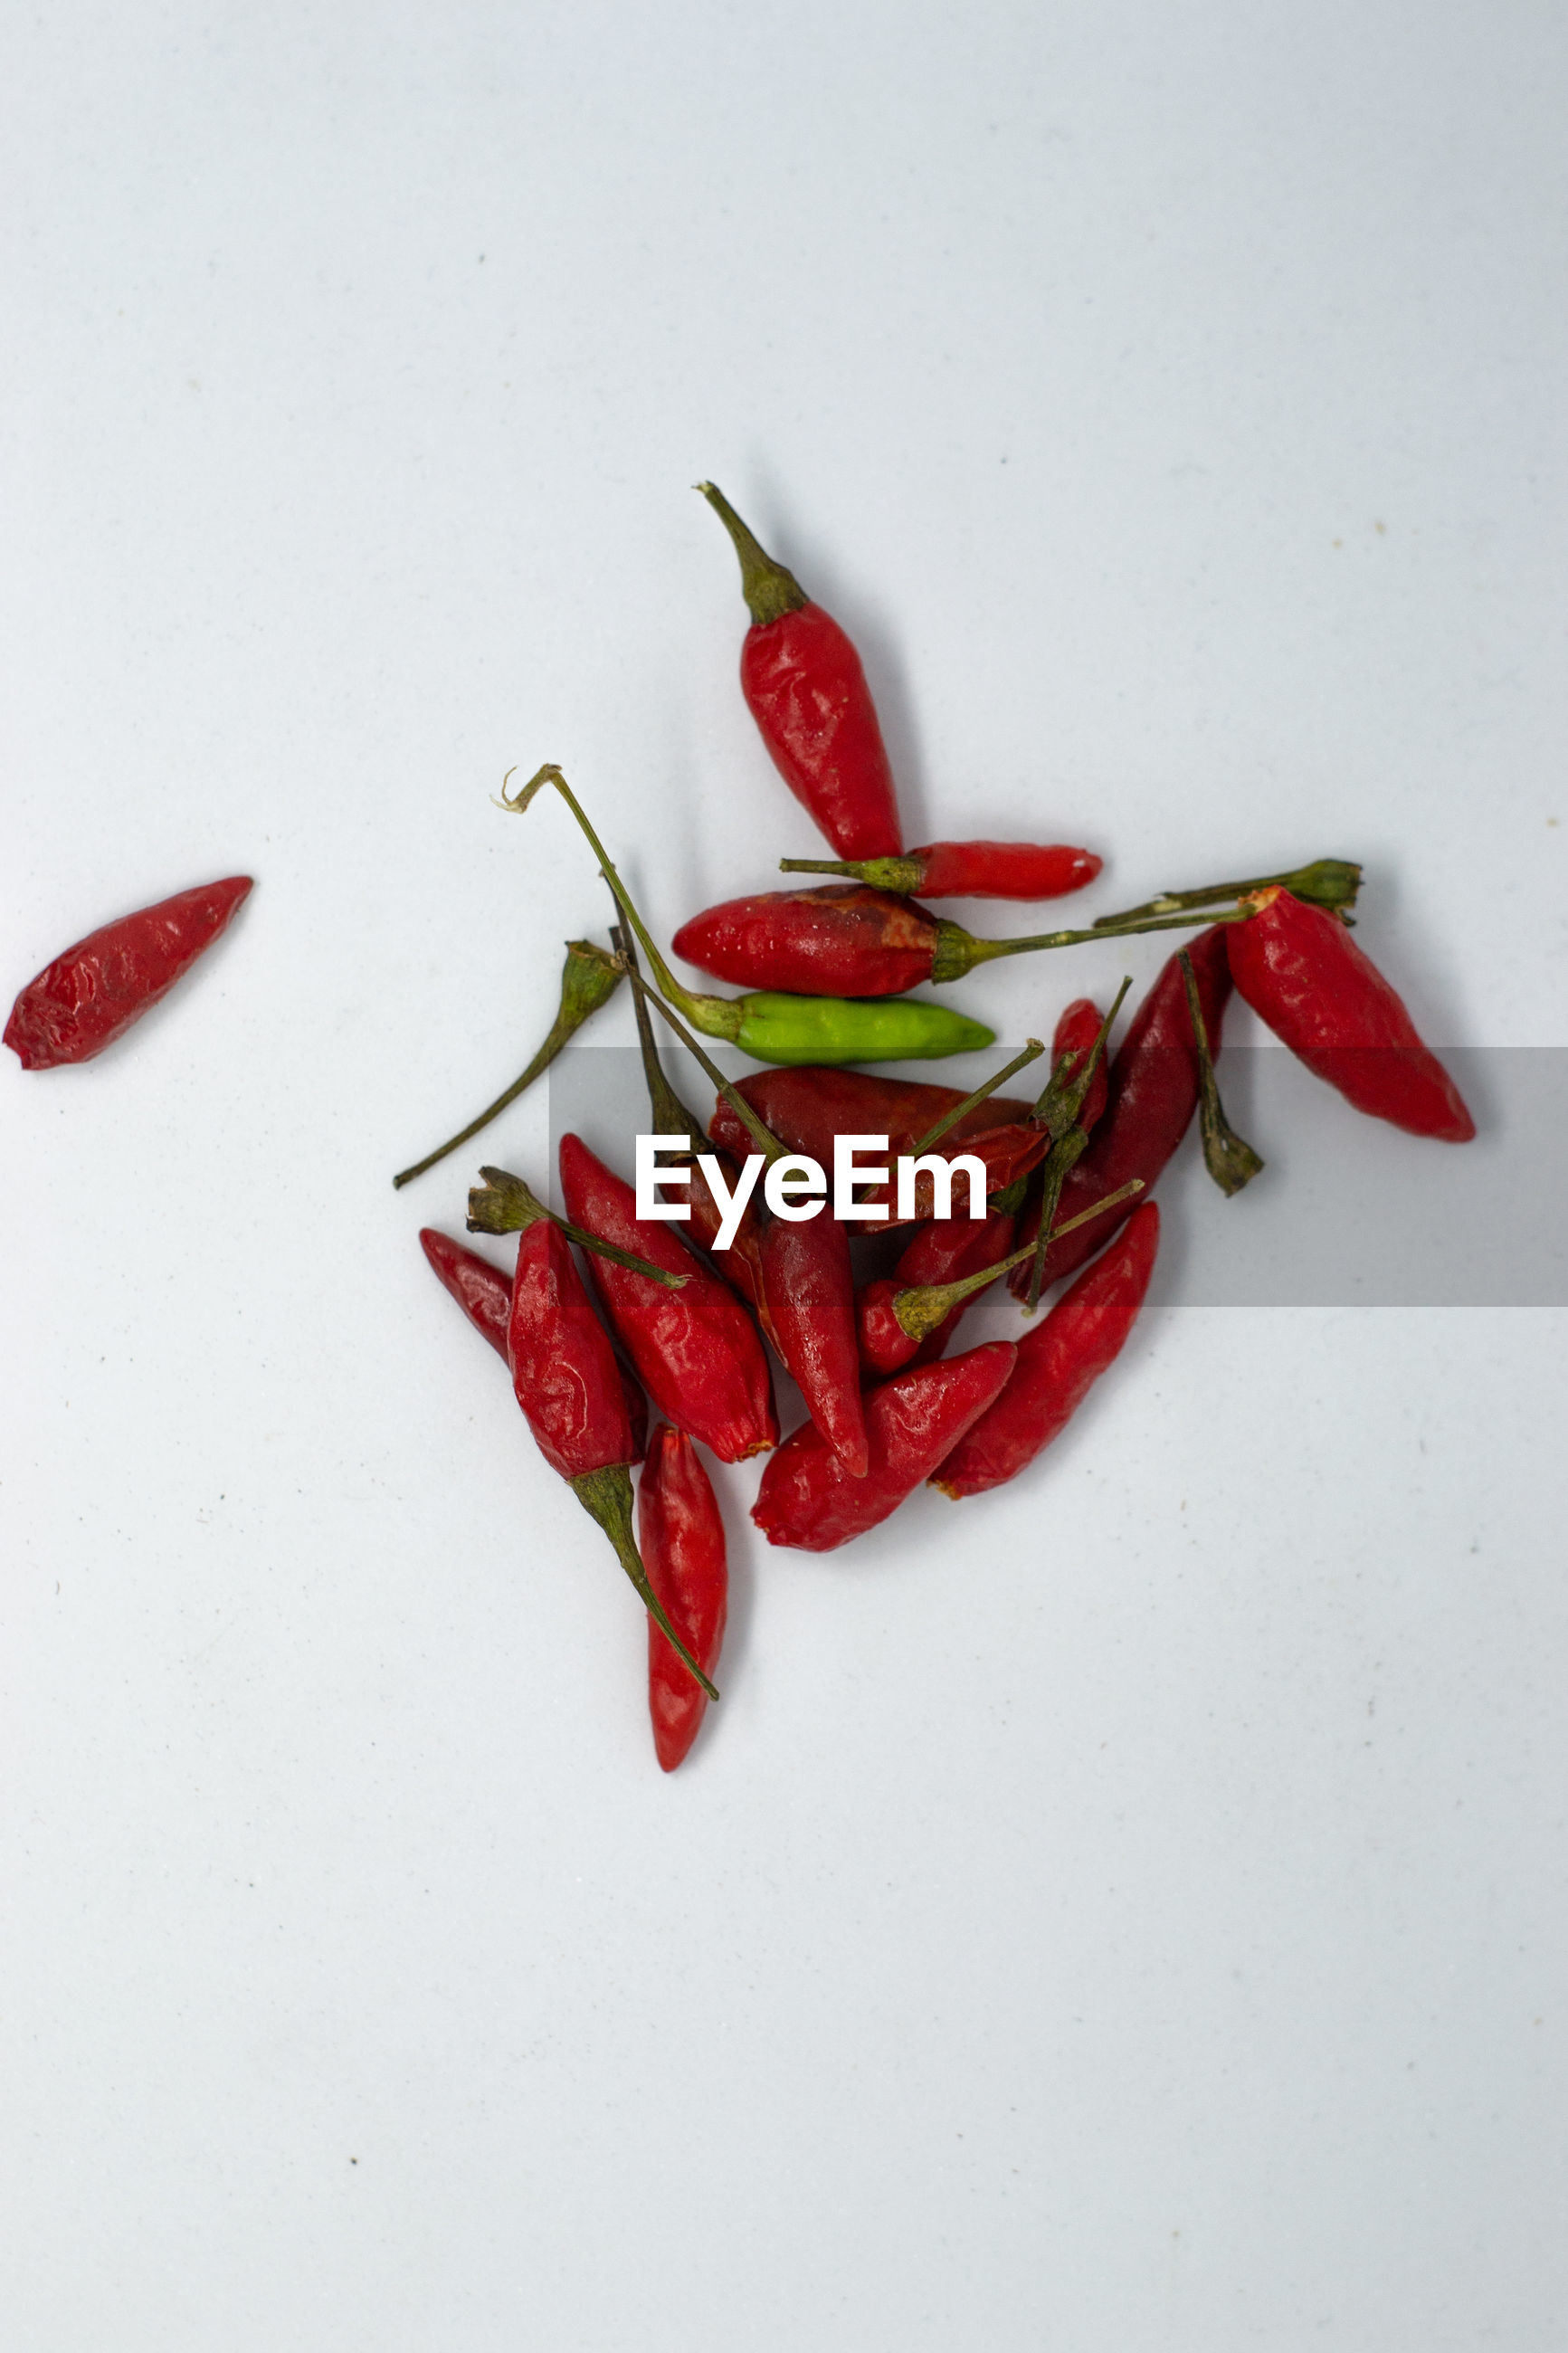 HIGH ANGLE VIEW OF CHILI PEPPERS ON WHITE BACKGROUND